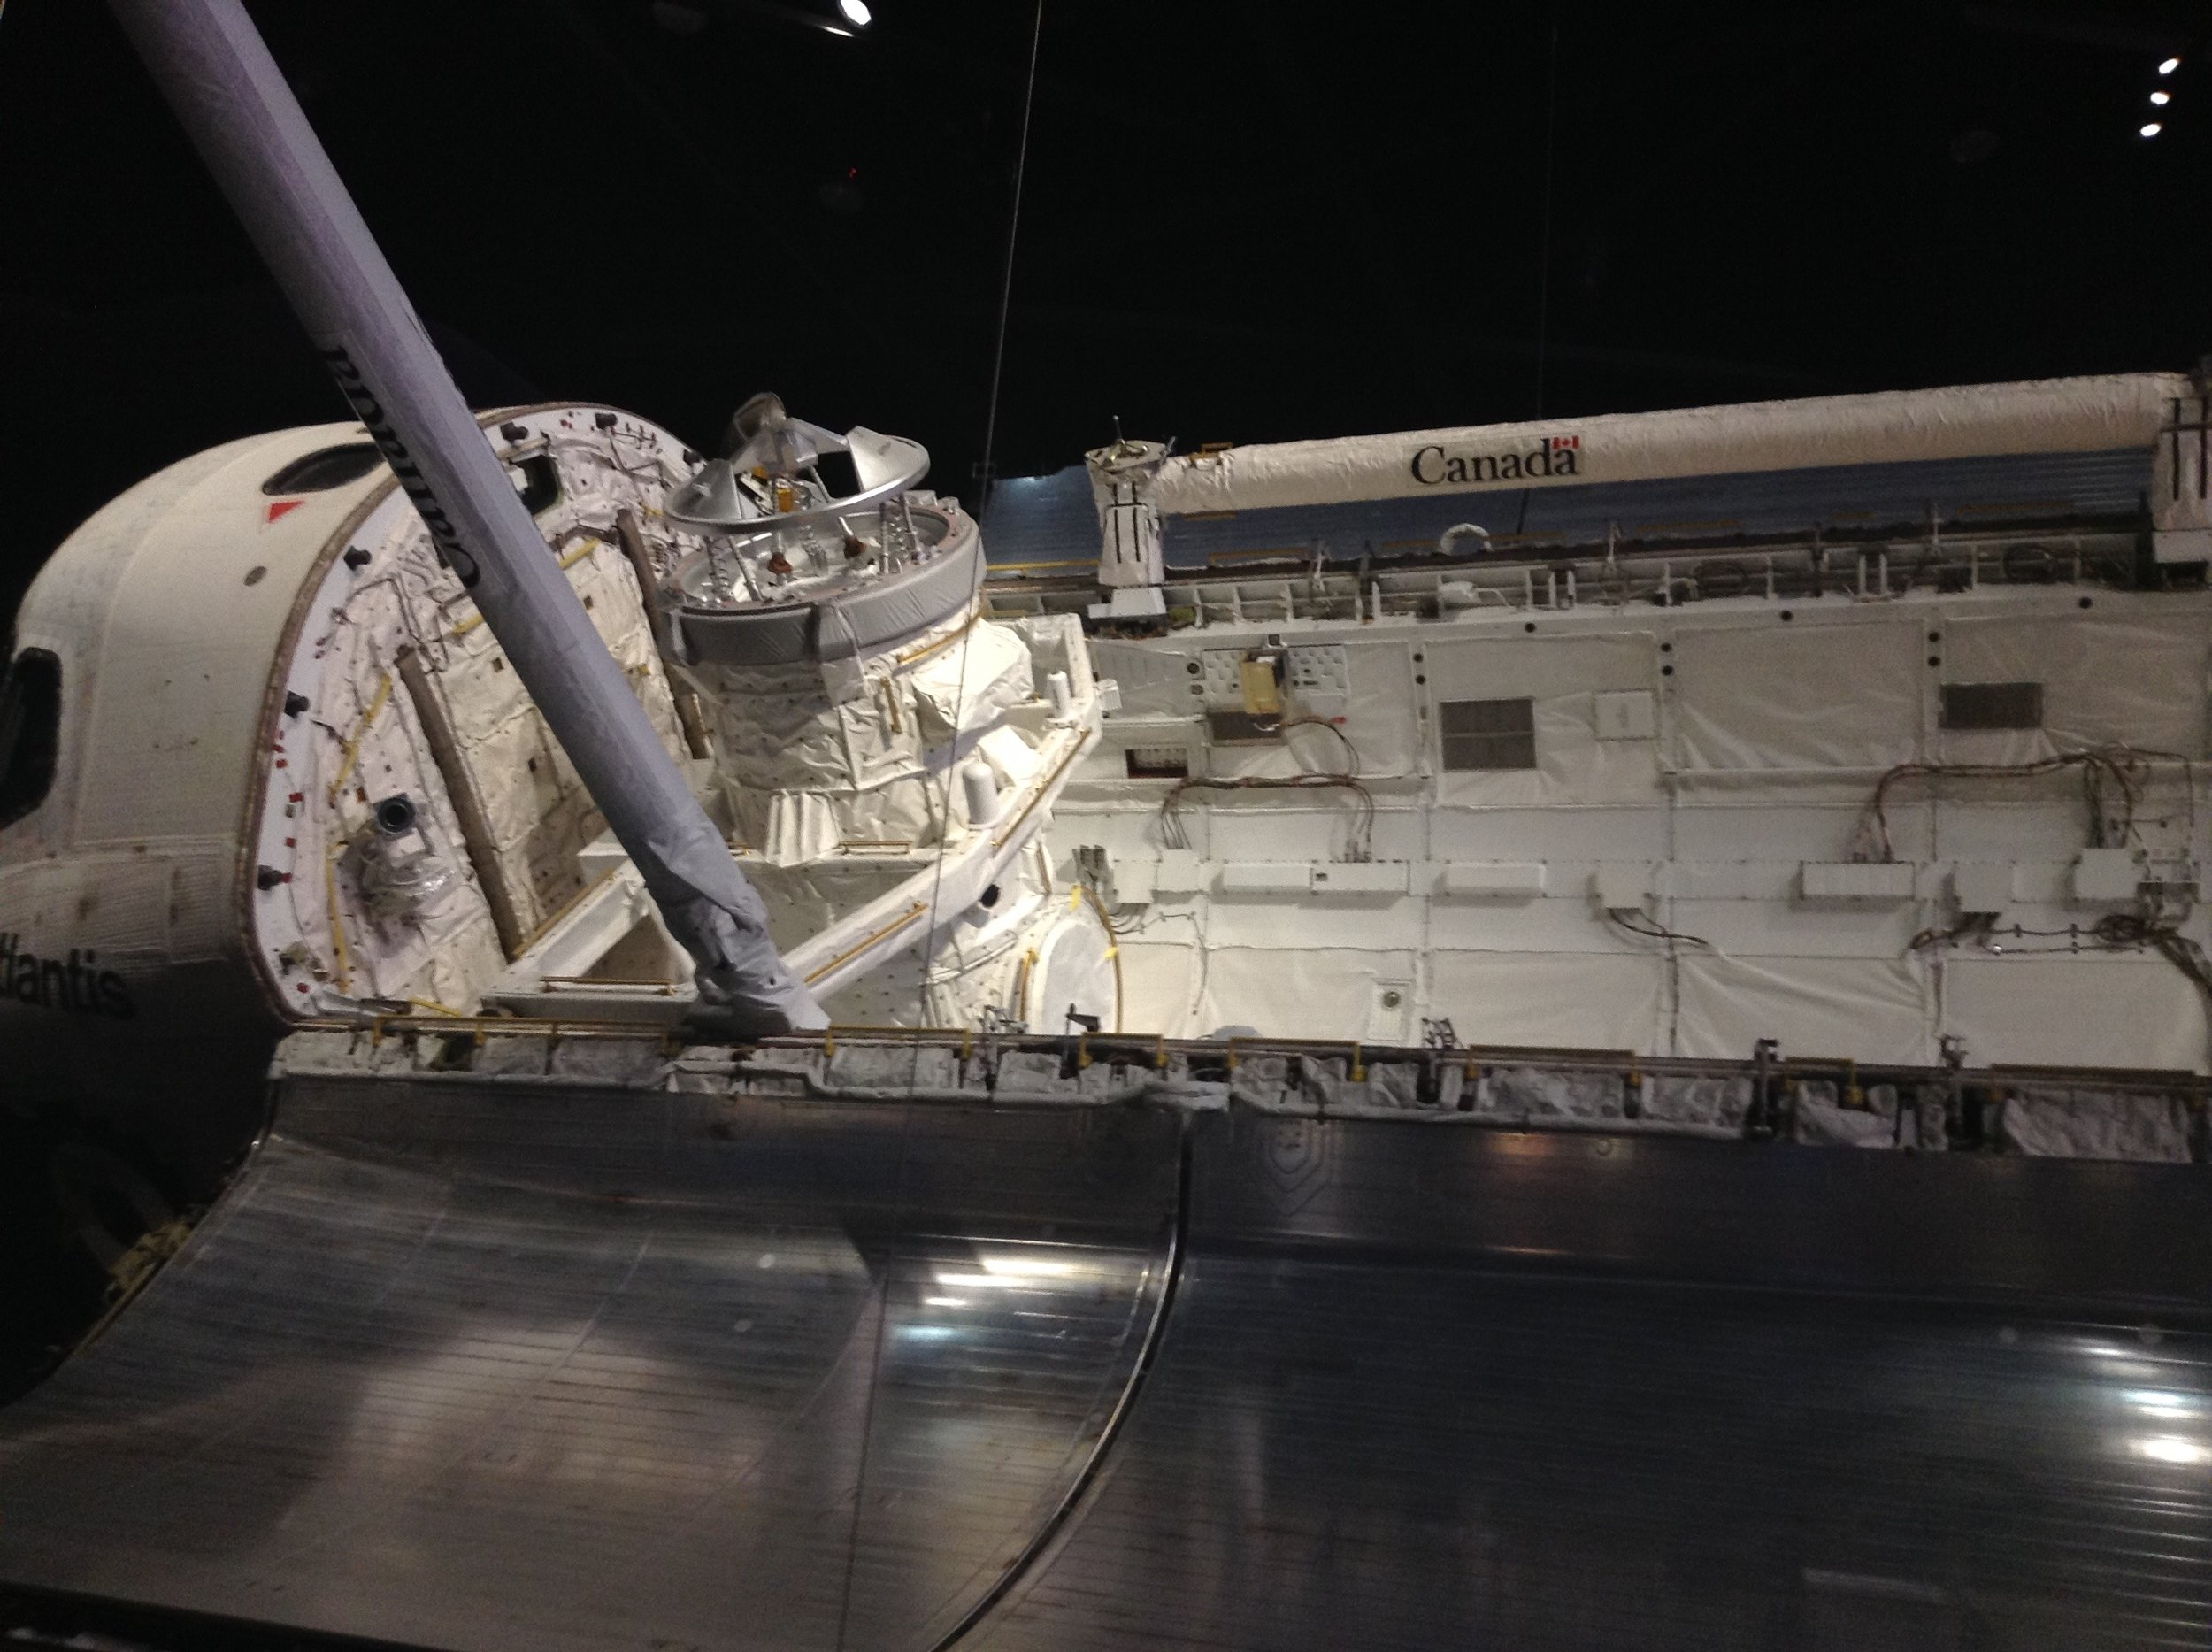 Atlantis's payload bay seen on permanent display at Kennedy Space Center.